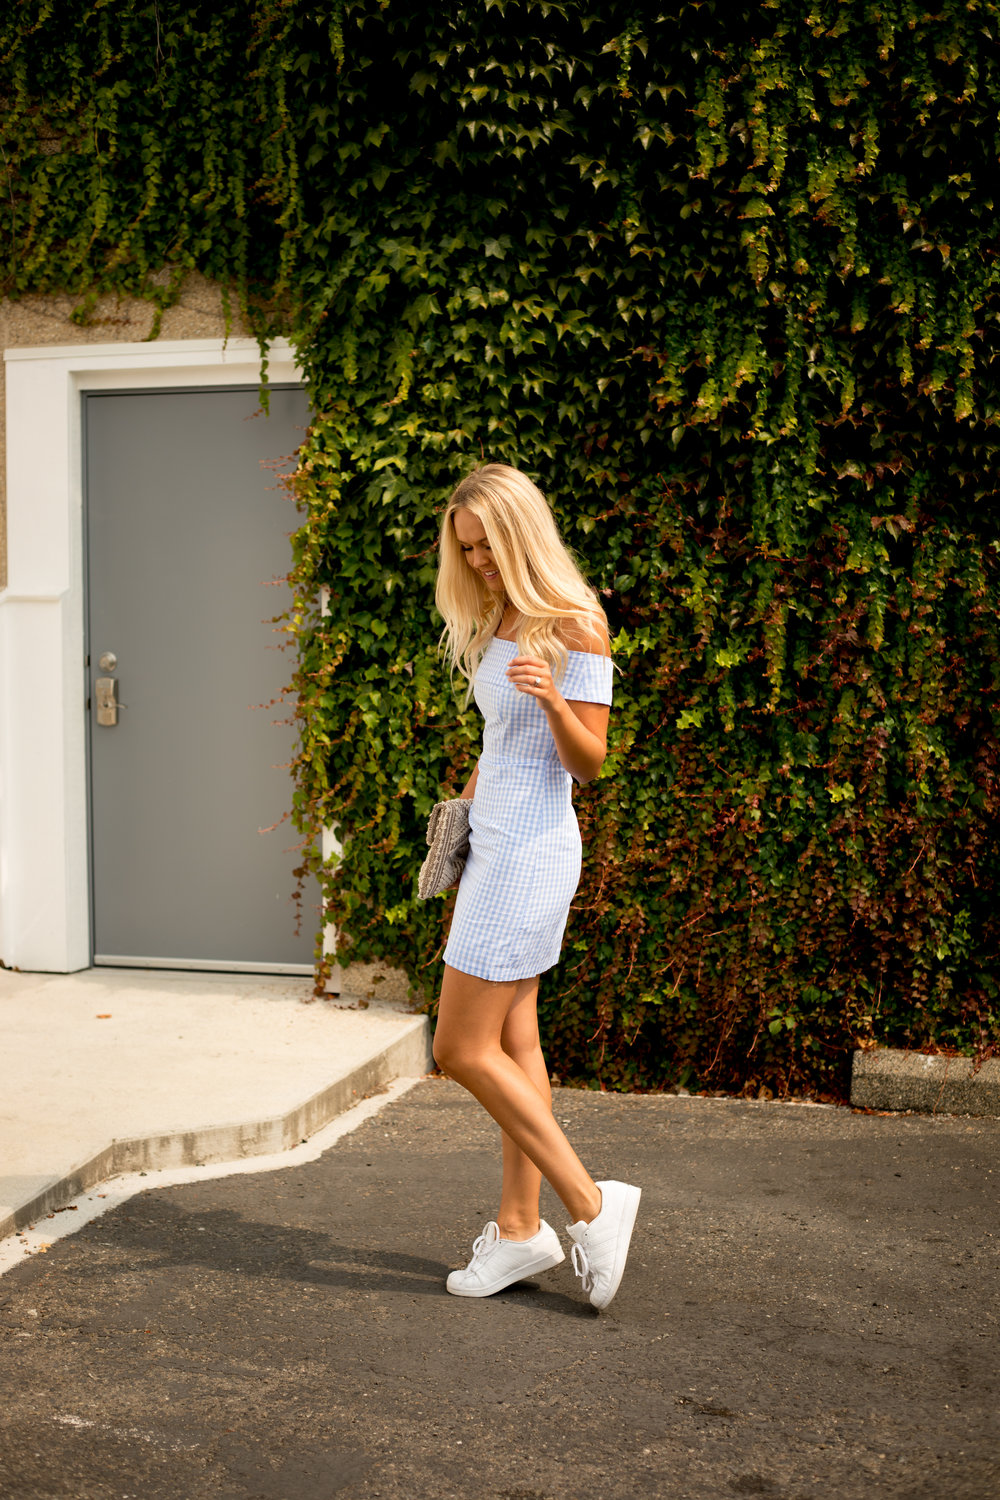 How To Style Sneakers With A Trendy Outfit   xxkarlierae.com